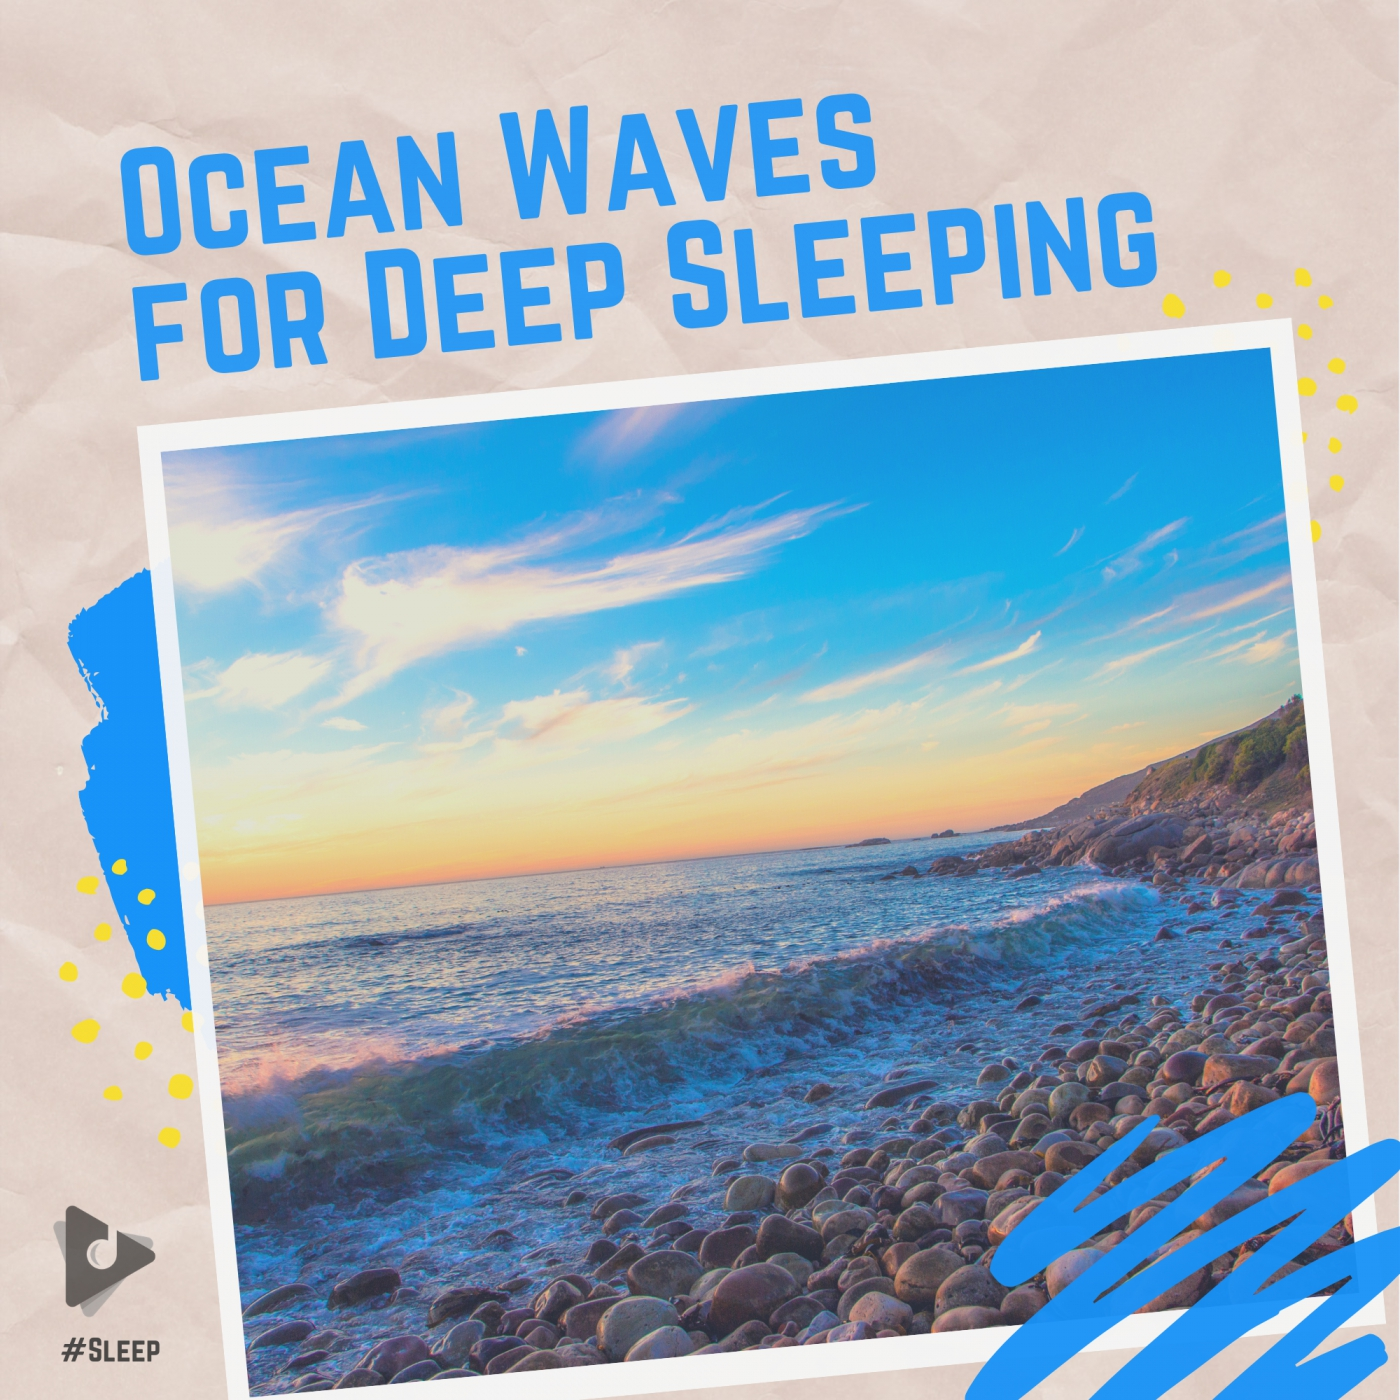 Ocean Waves for Deep Sleeping